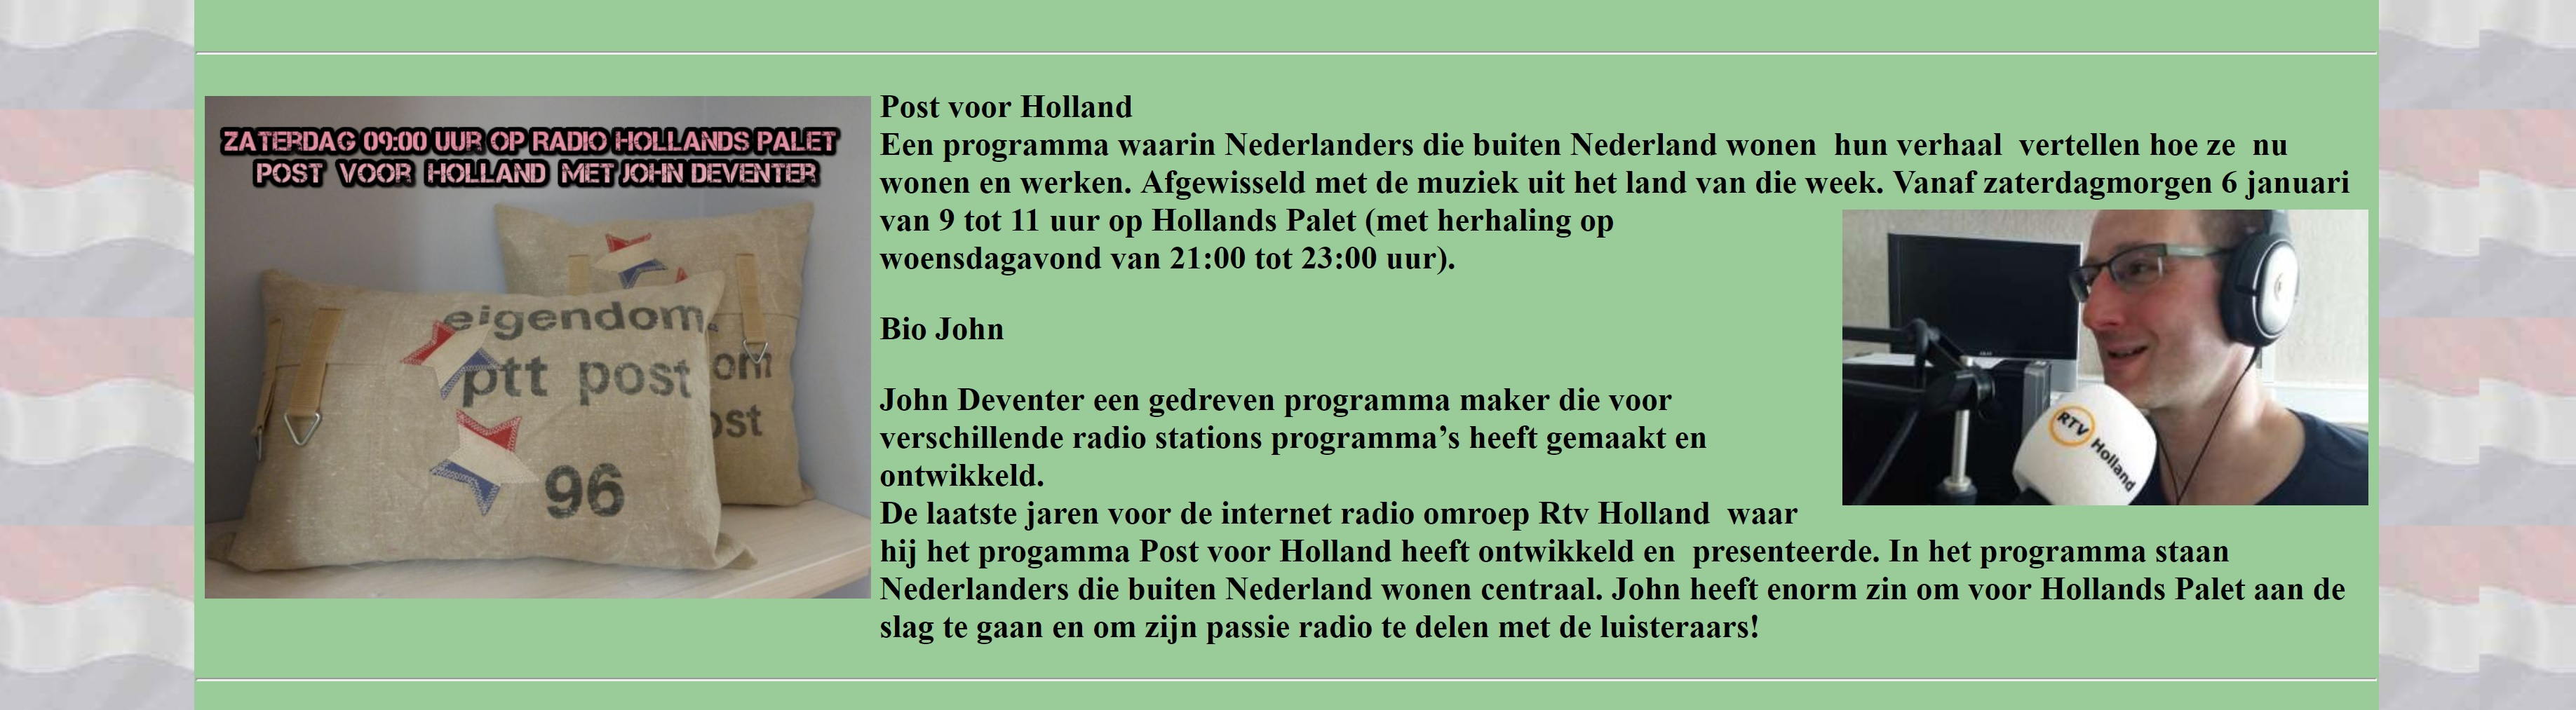 Post voor Holland